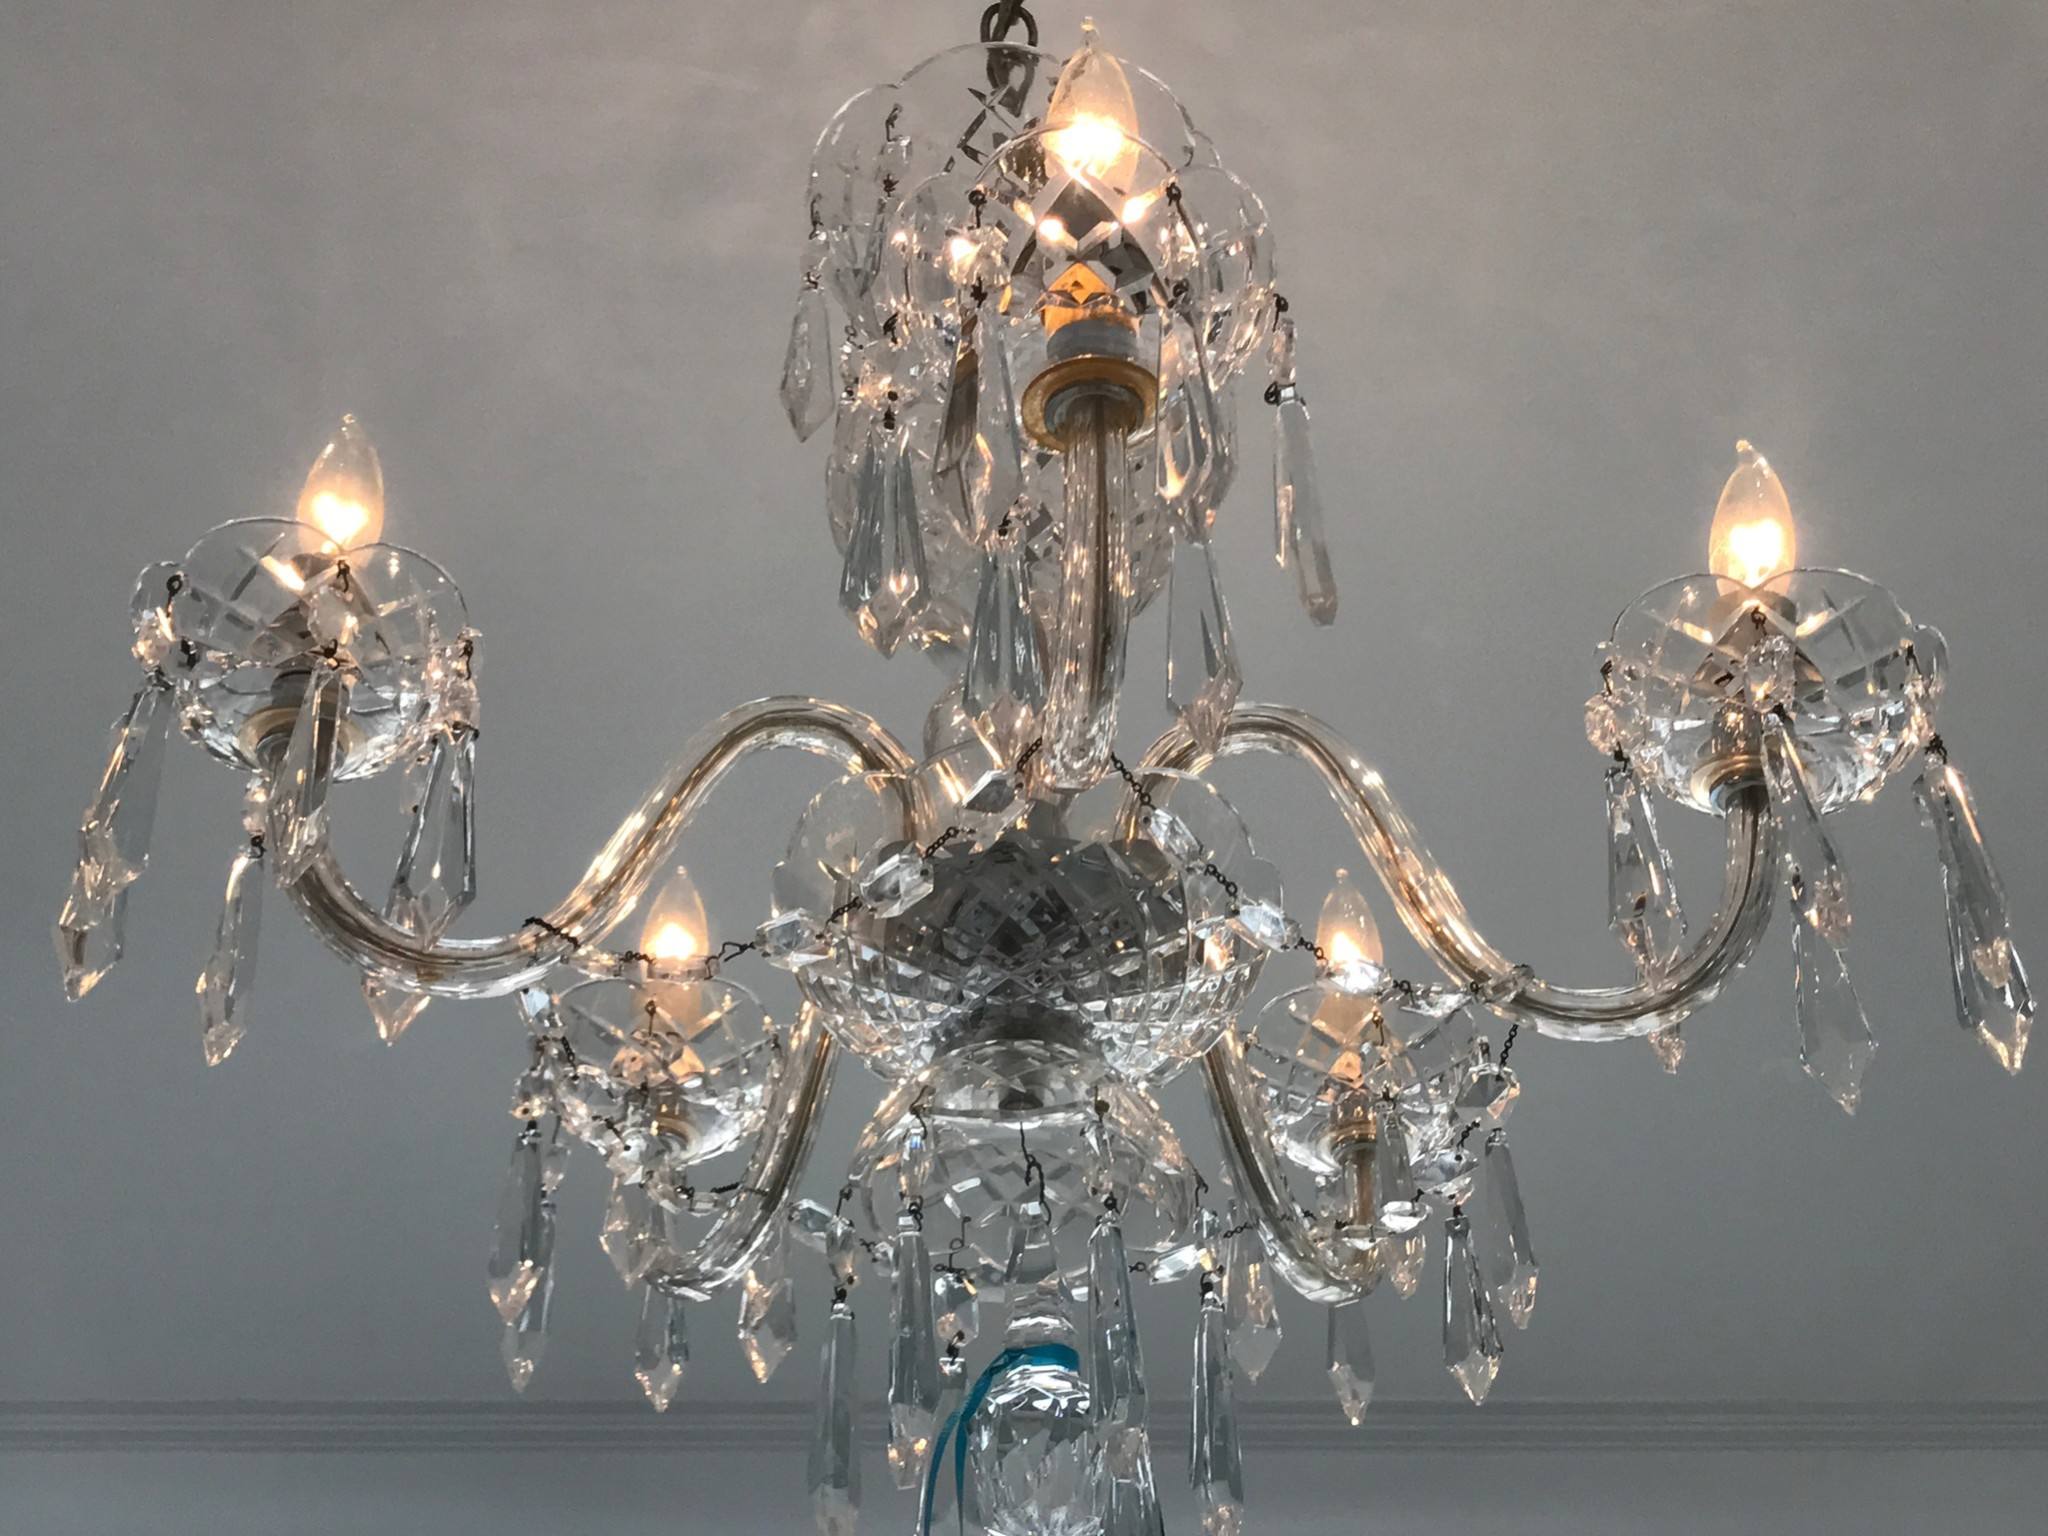 Waterford 5 Arm eragh Chandelier For Sale at Watercress